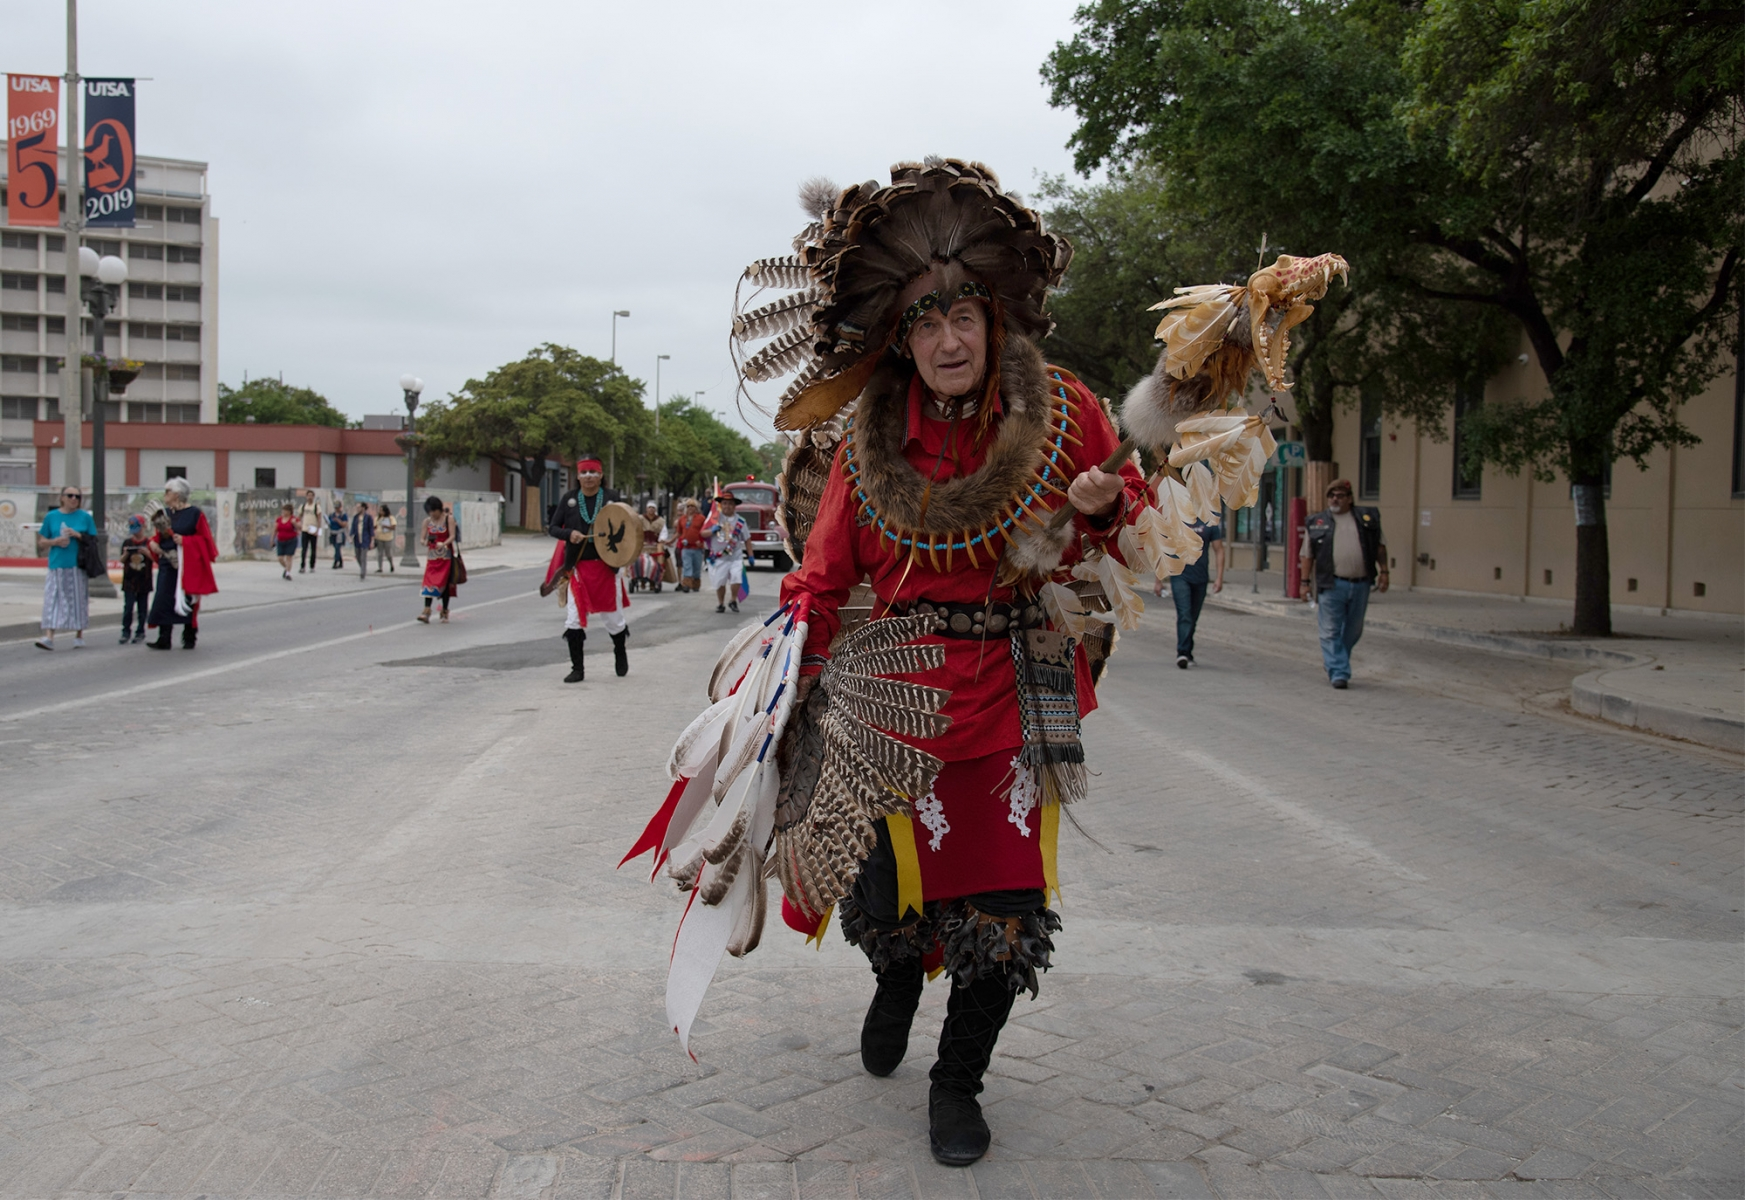 Milo Colton, a professor of criminal justice at St. Mary's University, dances down Dolorosa Street during San Antonio's 23rd annual César E. Chávez March for Justice on March 30. Photo by V. Finster | Heron